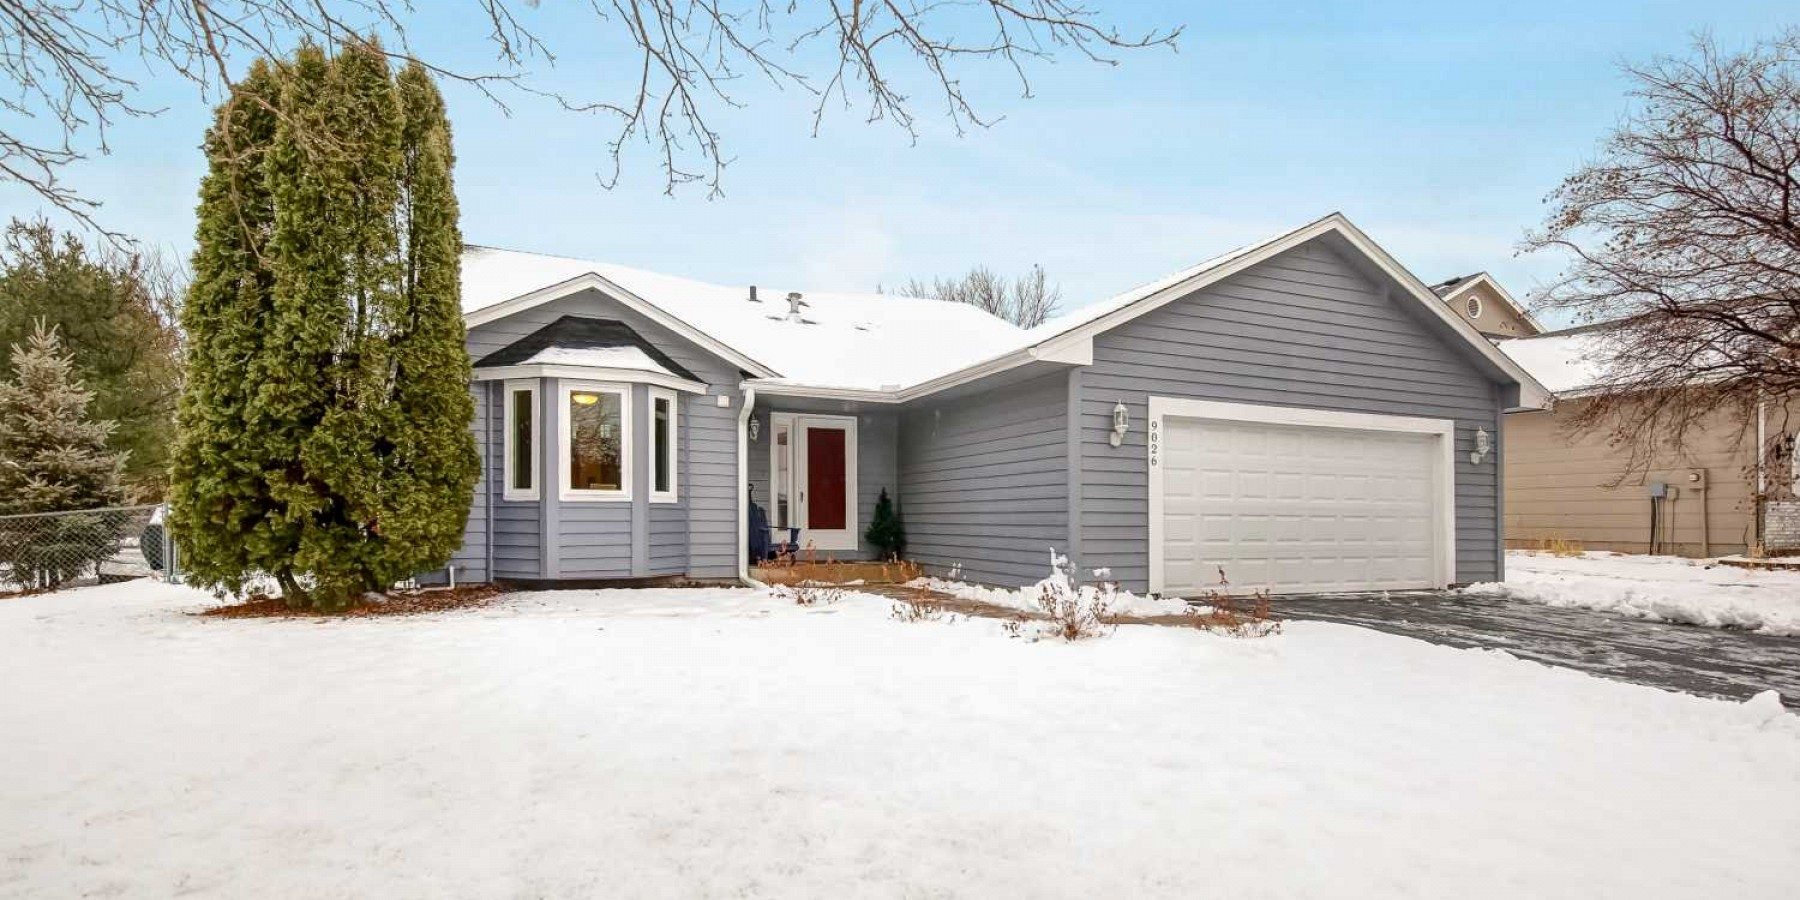 9026 WOODHALL CIRCLE NORTH, BROOKLYN PARK, MN 55443